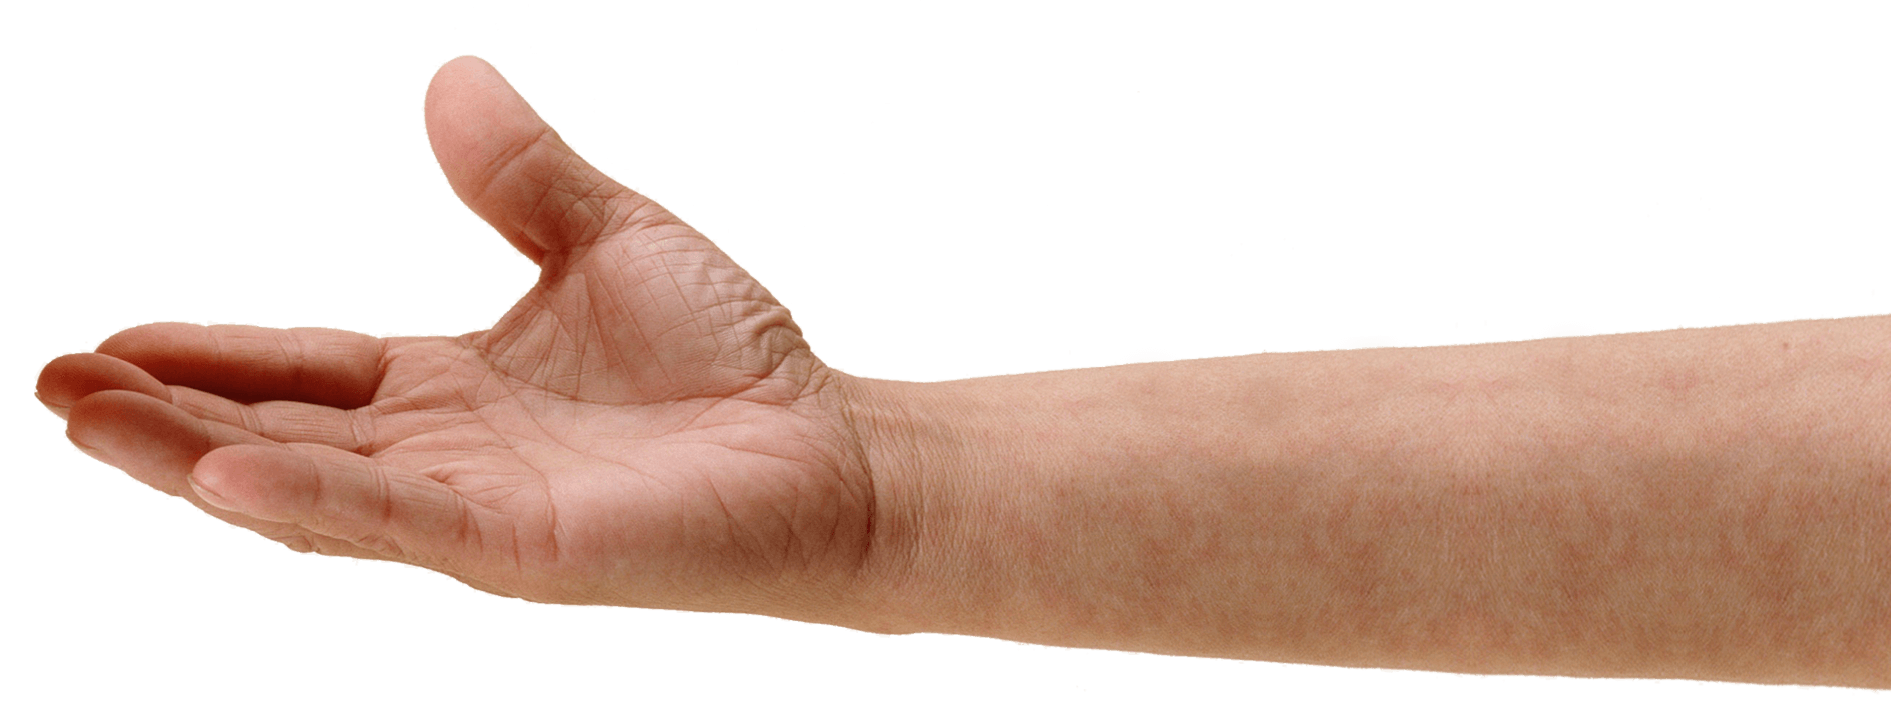 Arm out png. Hand image